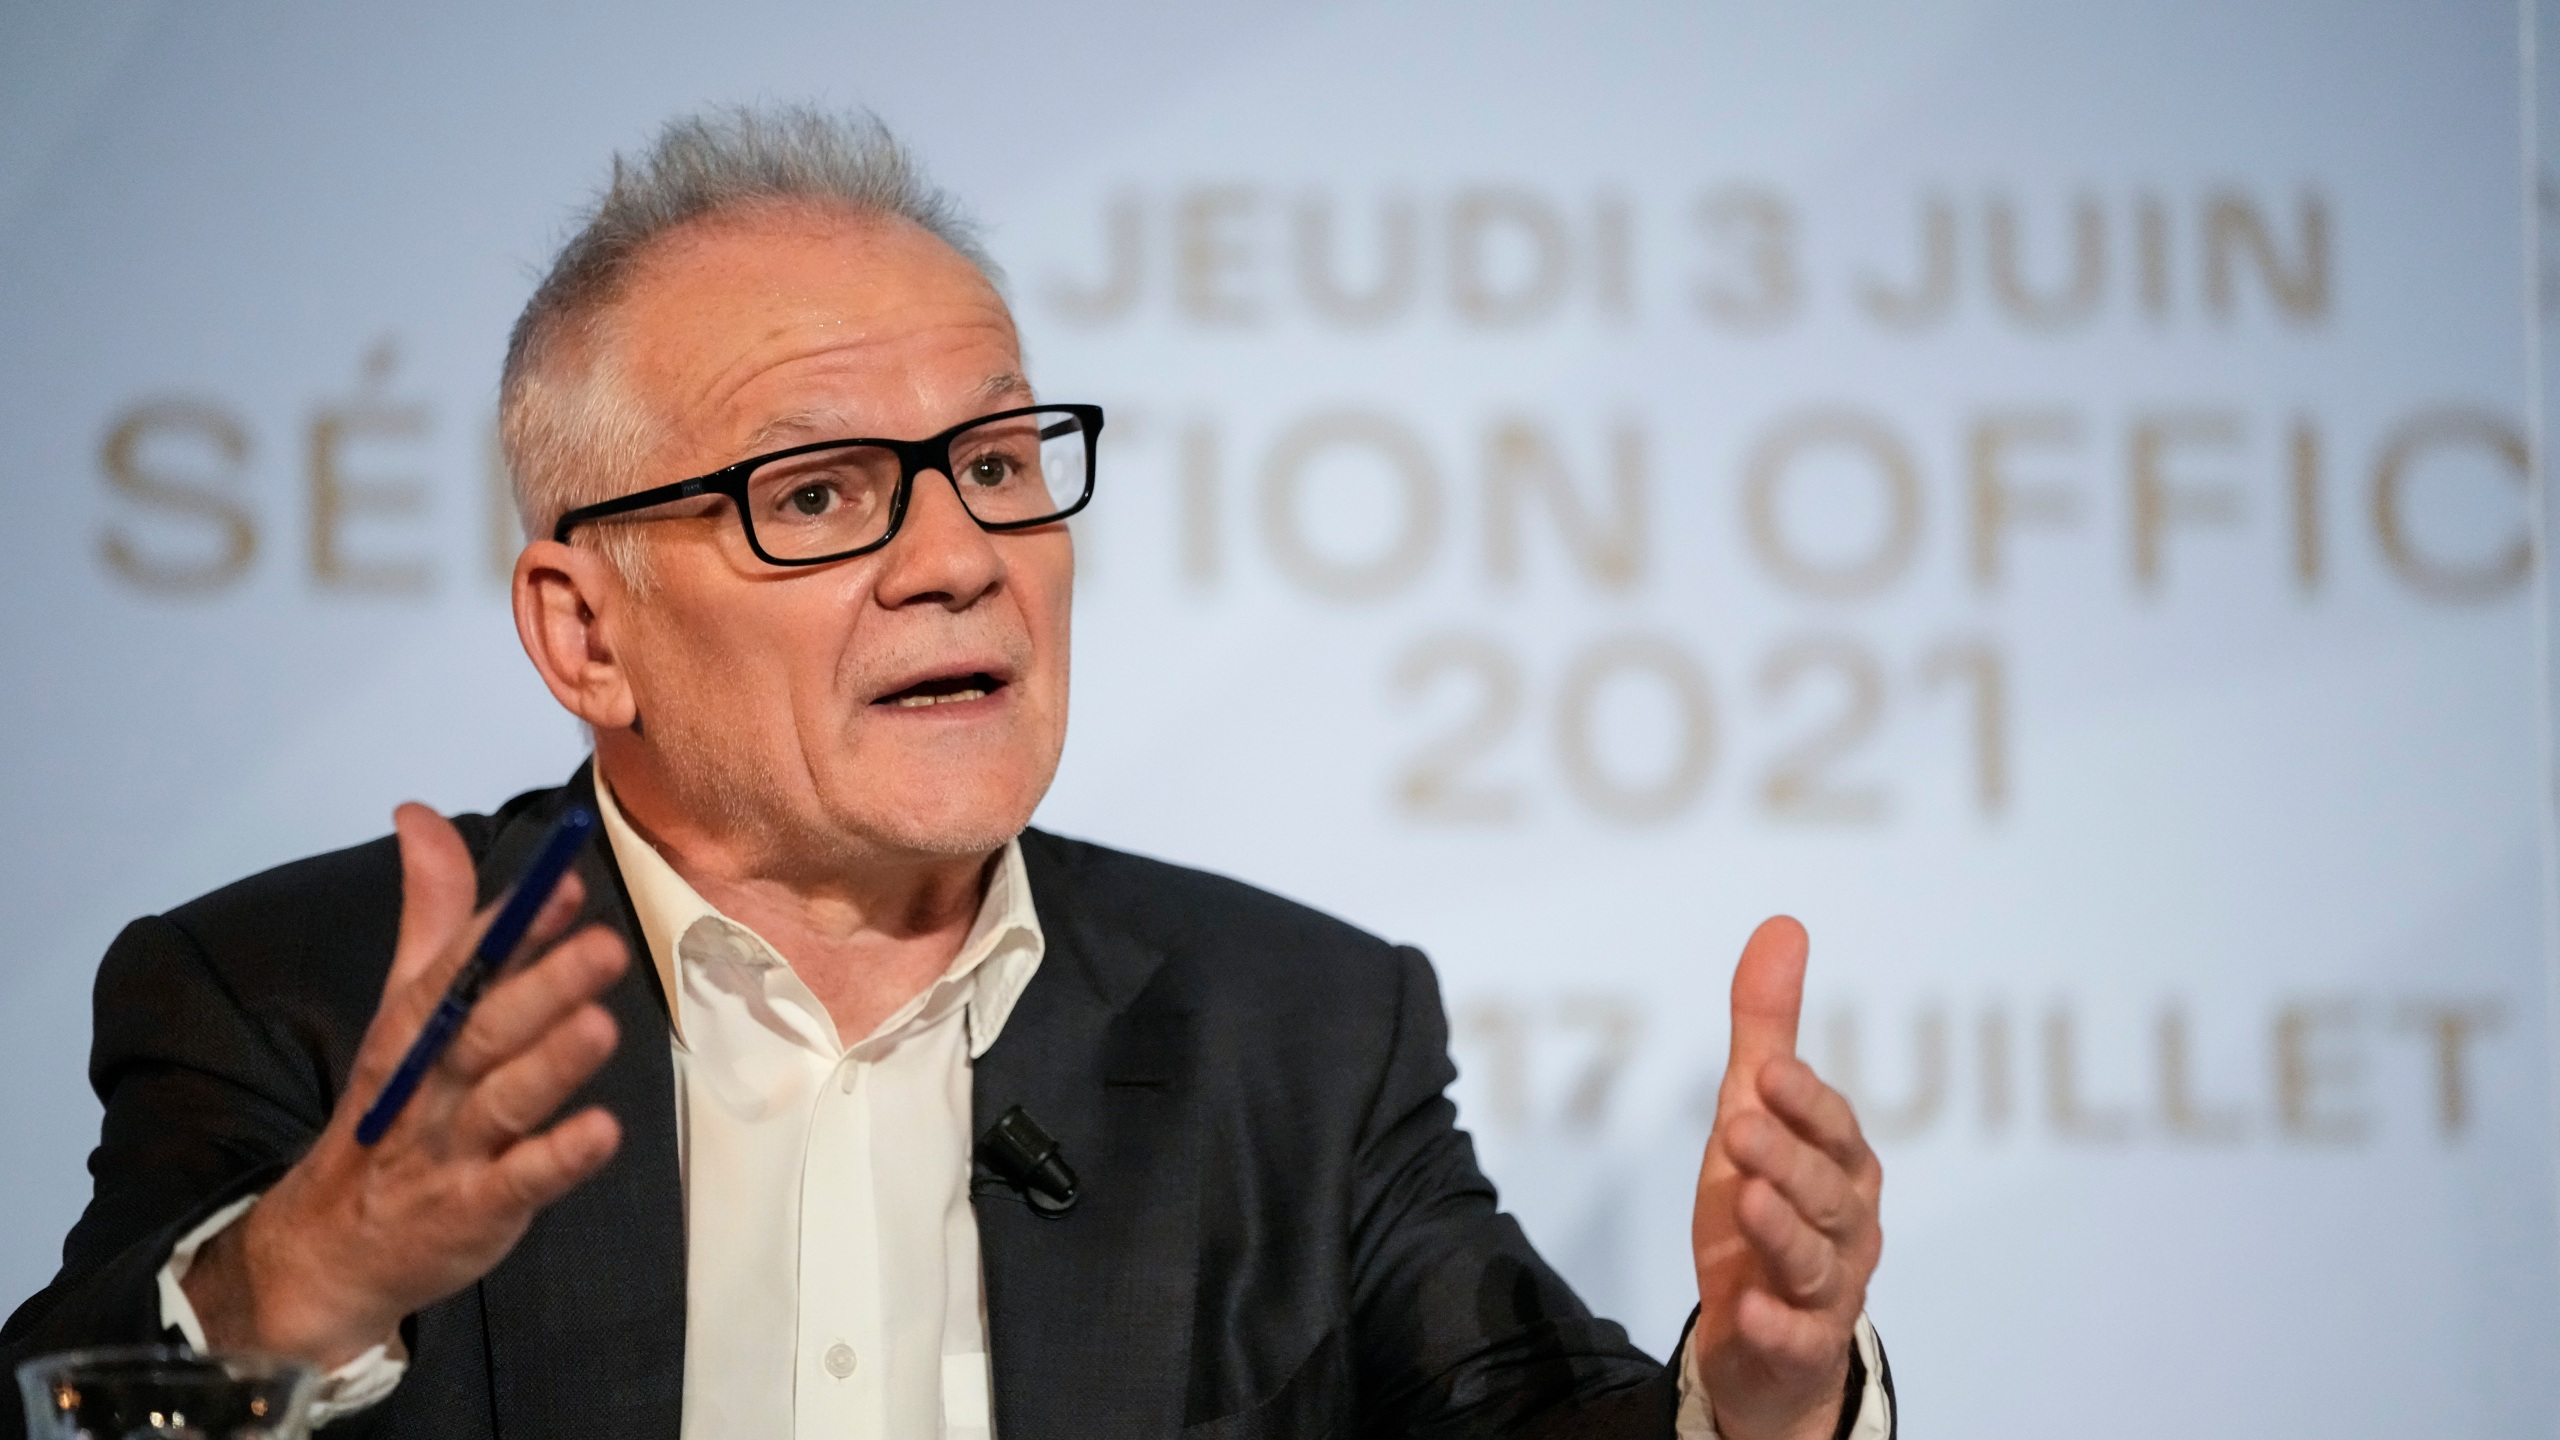 Thierry Fremaux